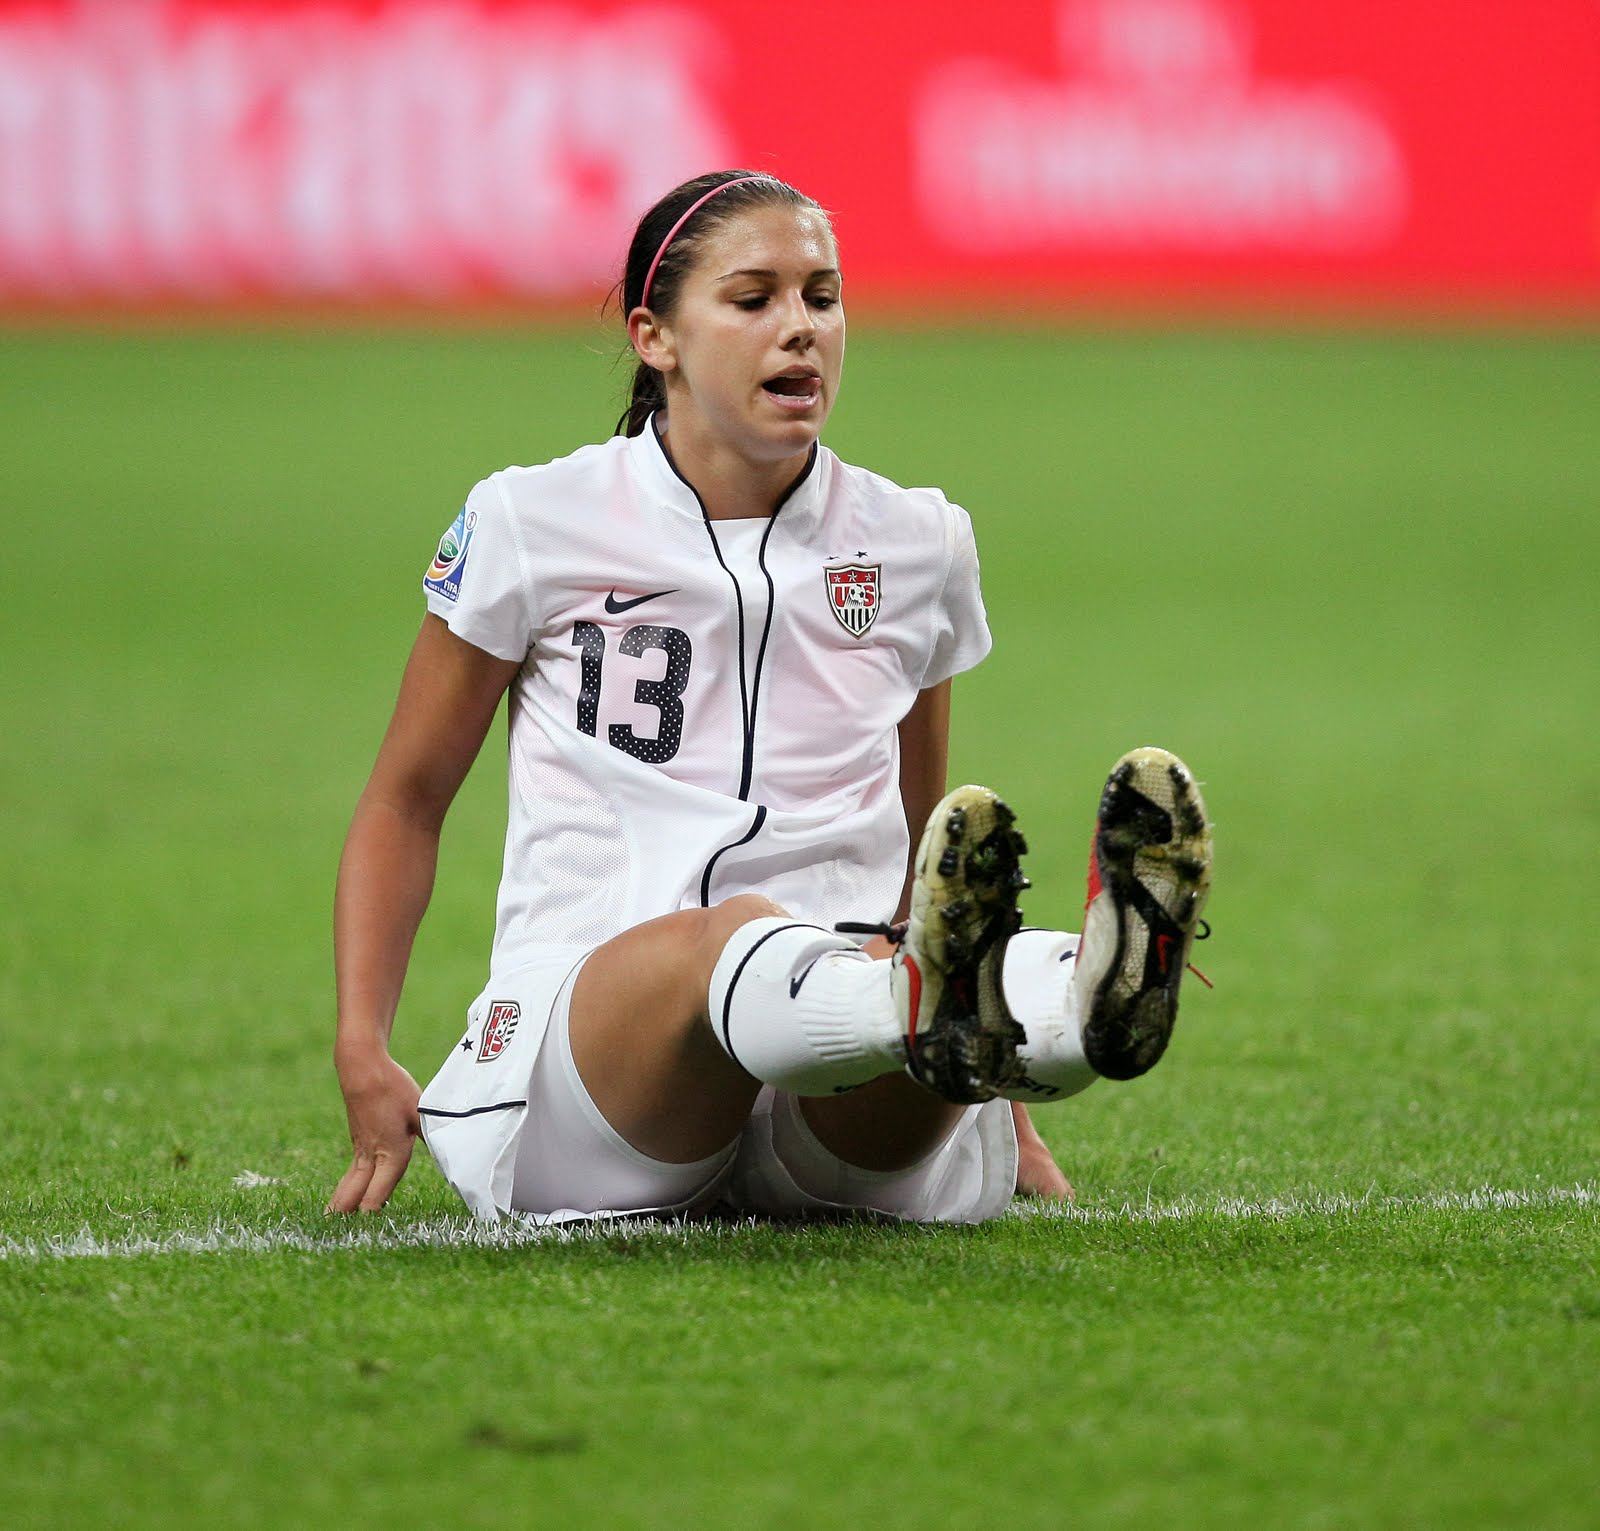 Alex Morgan Usa Football Player 2012 New Sports Stars